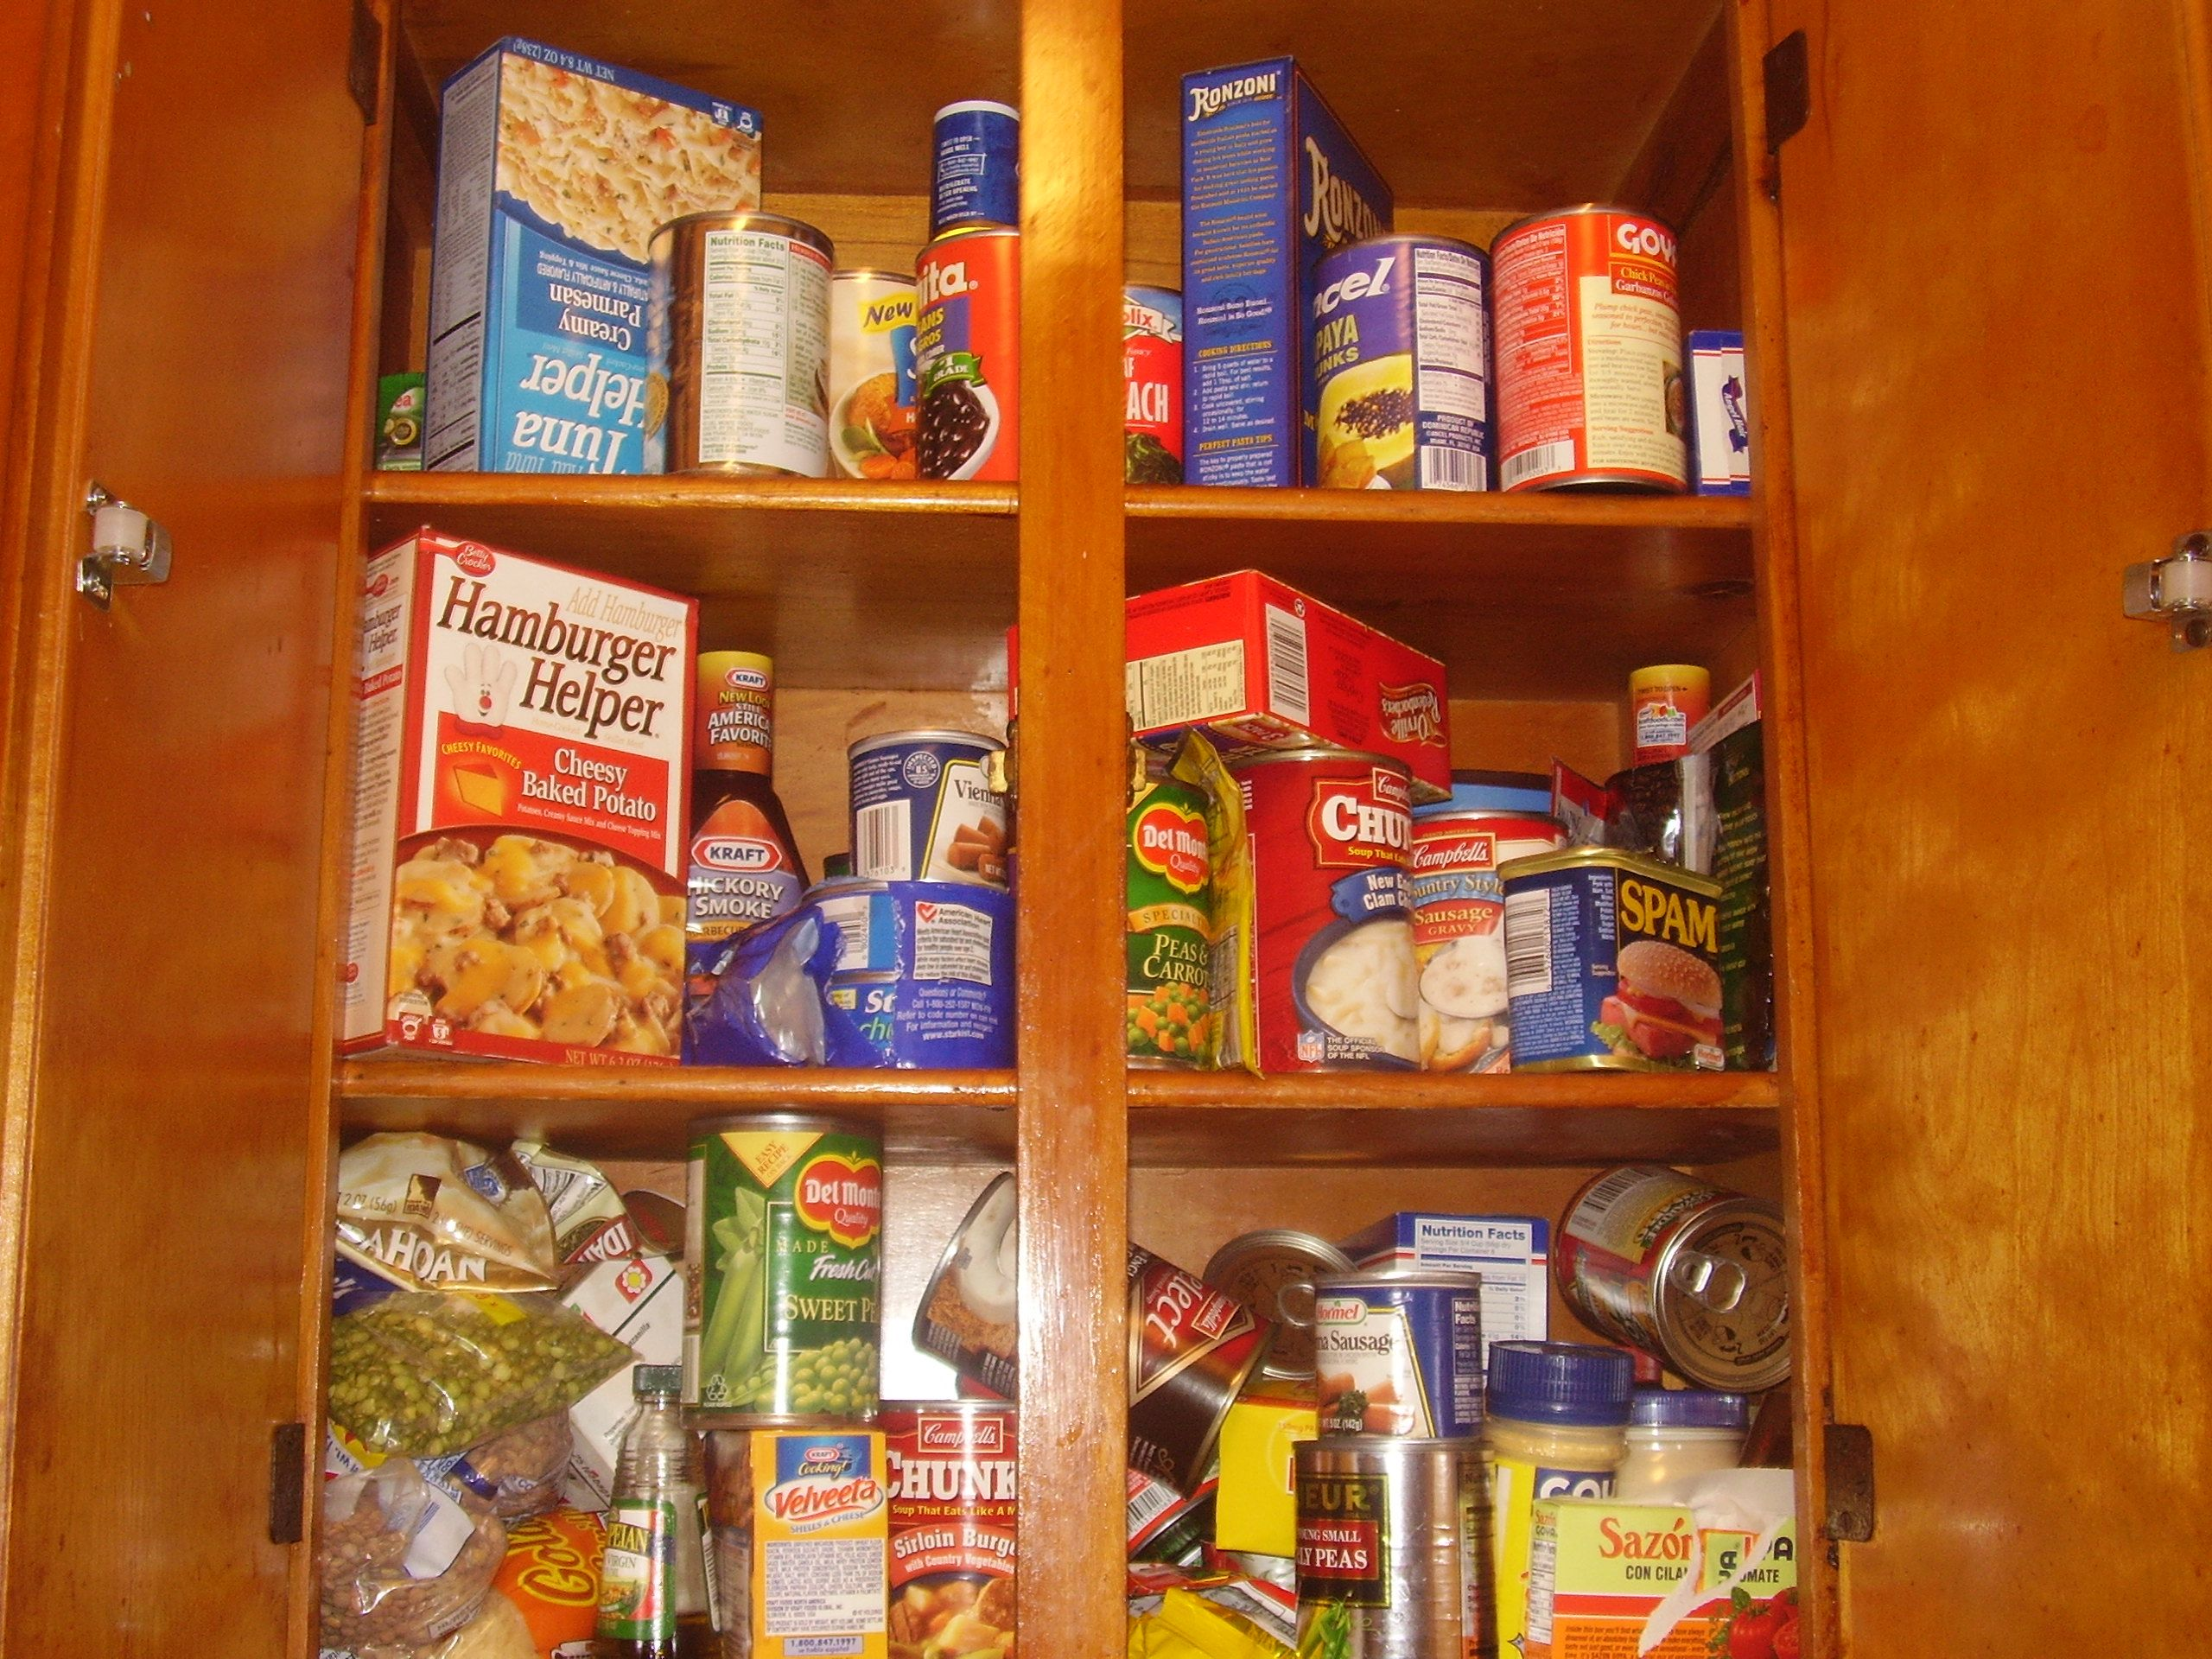 Preppers Beware: These Are The Worst Survival Foods To Stock Up On! Rid  Your Survival Pantry Of These Survival Foods For Disaster Preparedness U0026  SHTF!